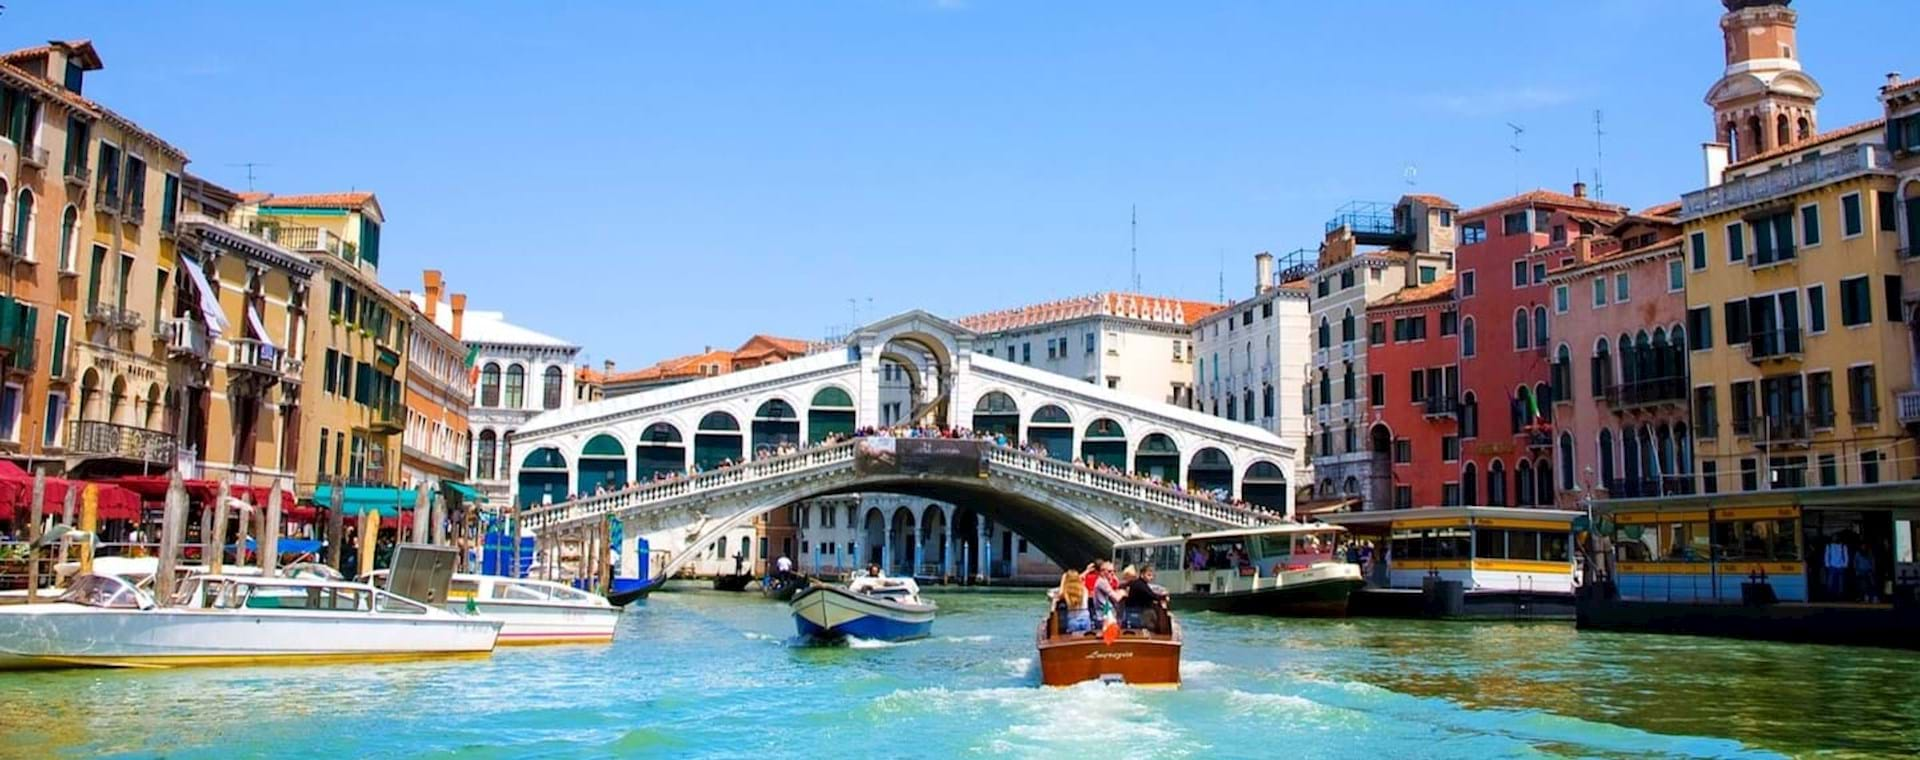 Venice from Florence by Train with Venice Highlights and Skip-the-Line entry to St Mark's Basilica